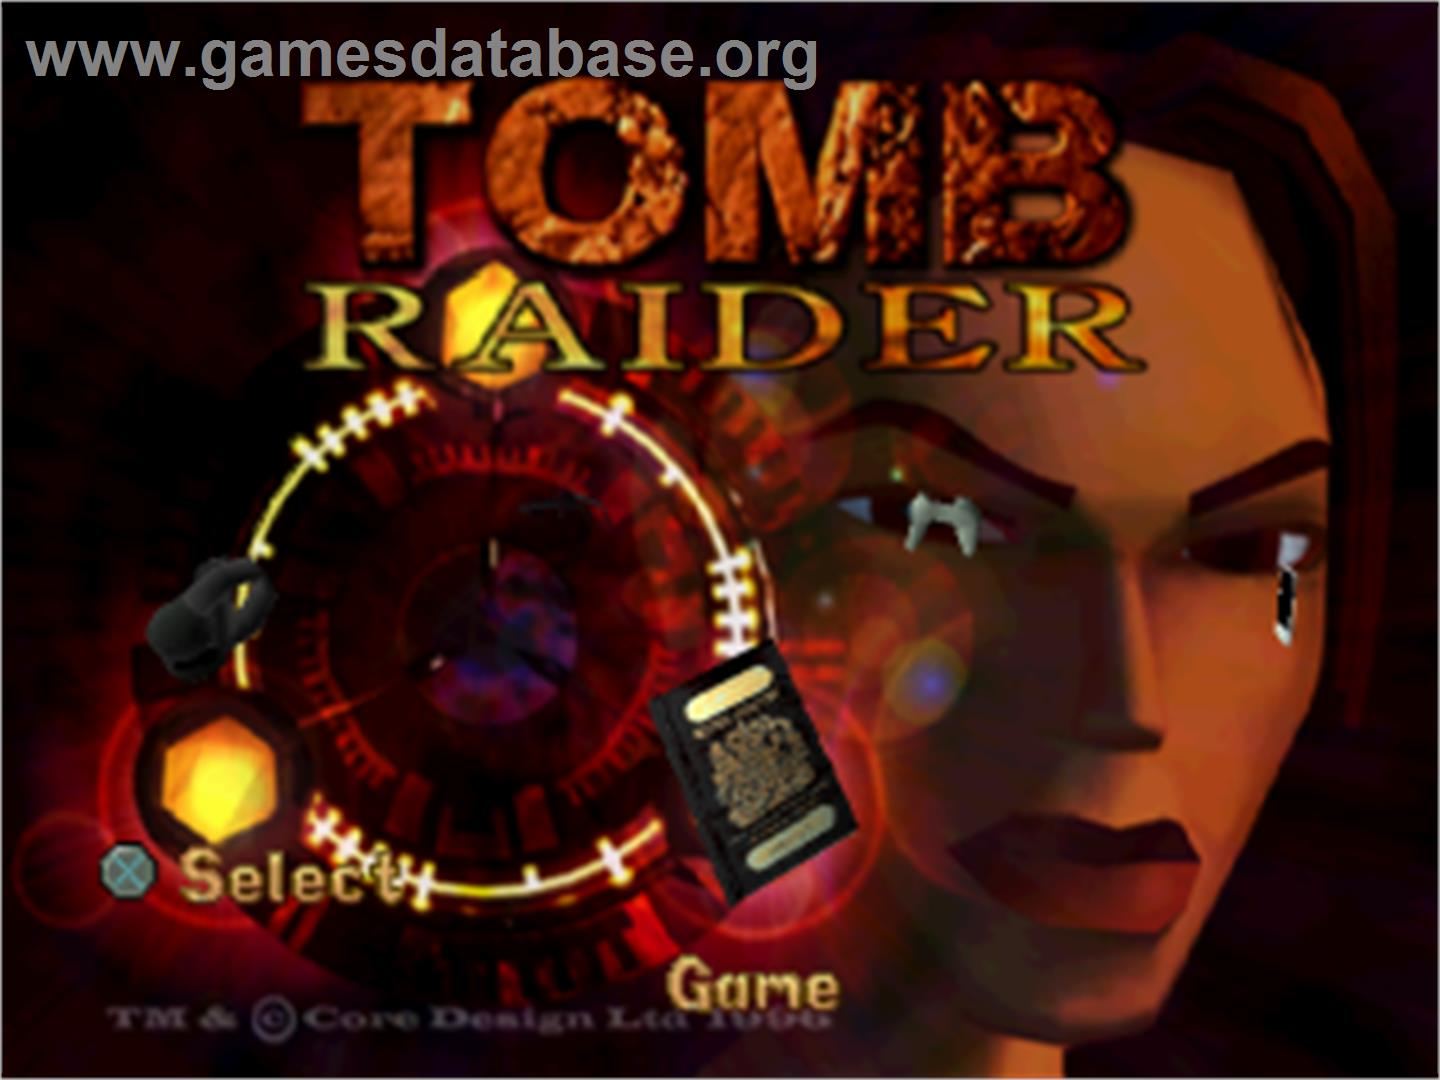 Tomb Raider - Sony Playstation - Artwork - Title Screen